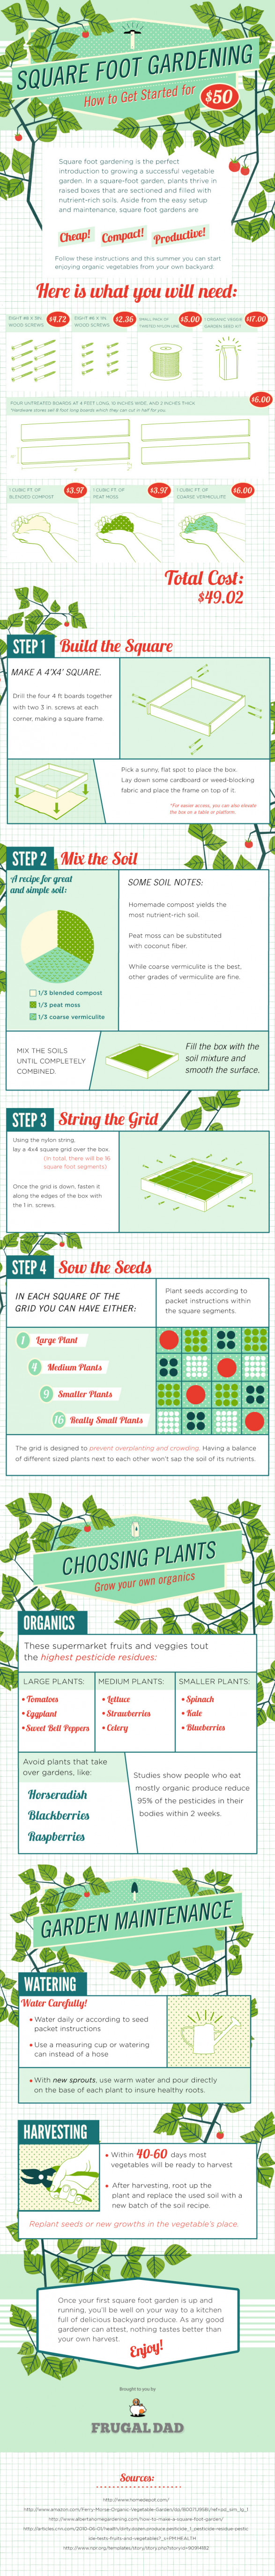 Square Foot Gardening: How to Get Started for $50